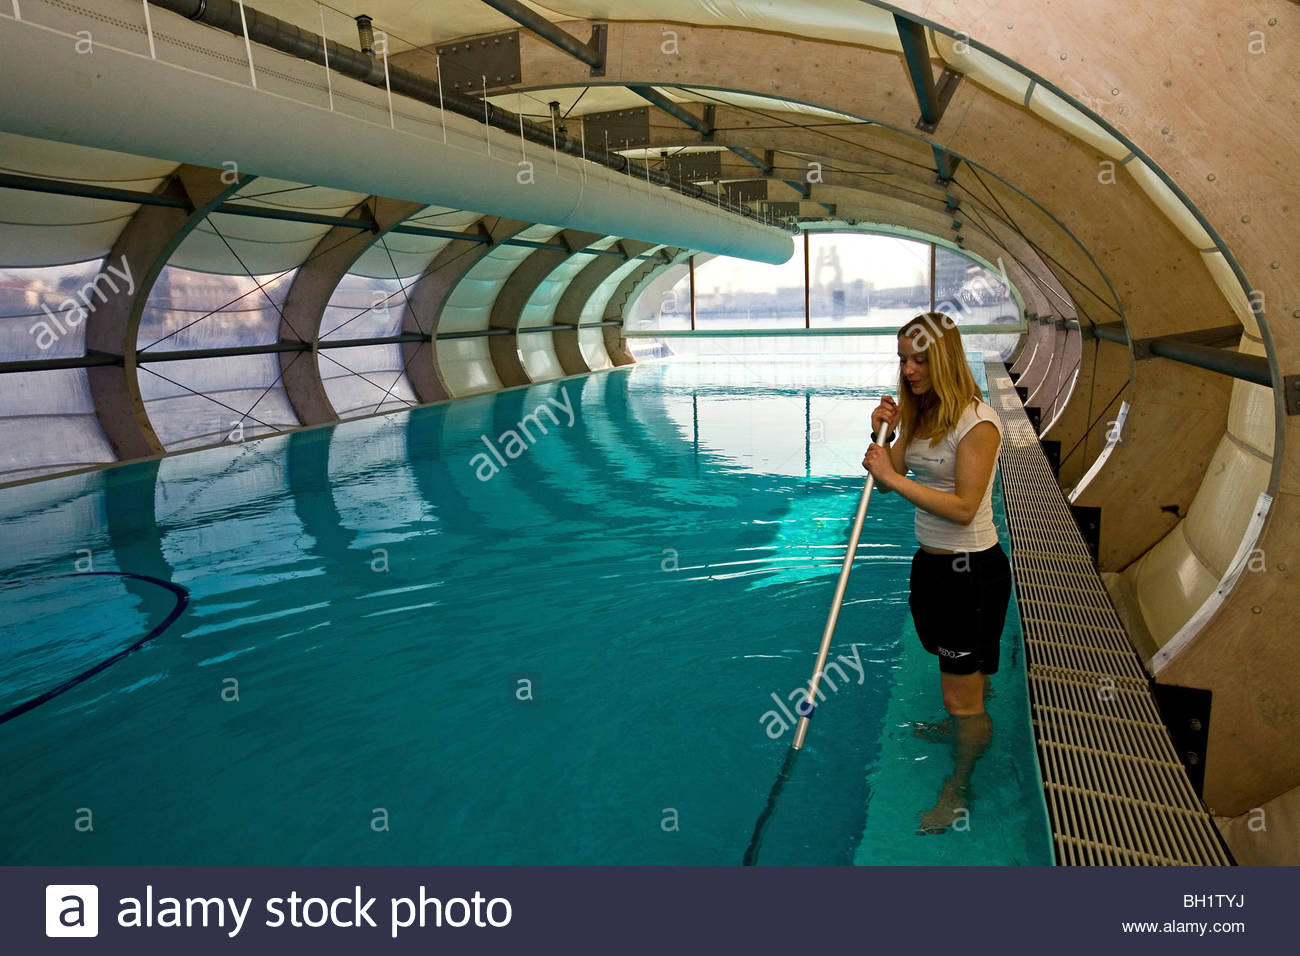 badeschiff cleaning the floating swimming pool berlin stock photo royalty free image. Black Bedroom Furniture Sets. Home Design Ideas